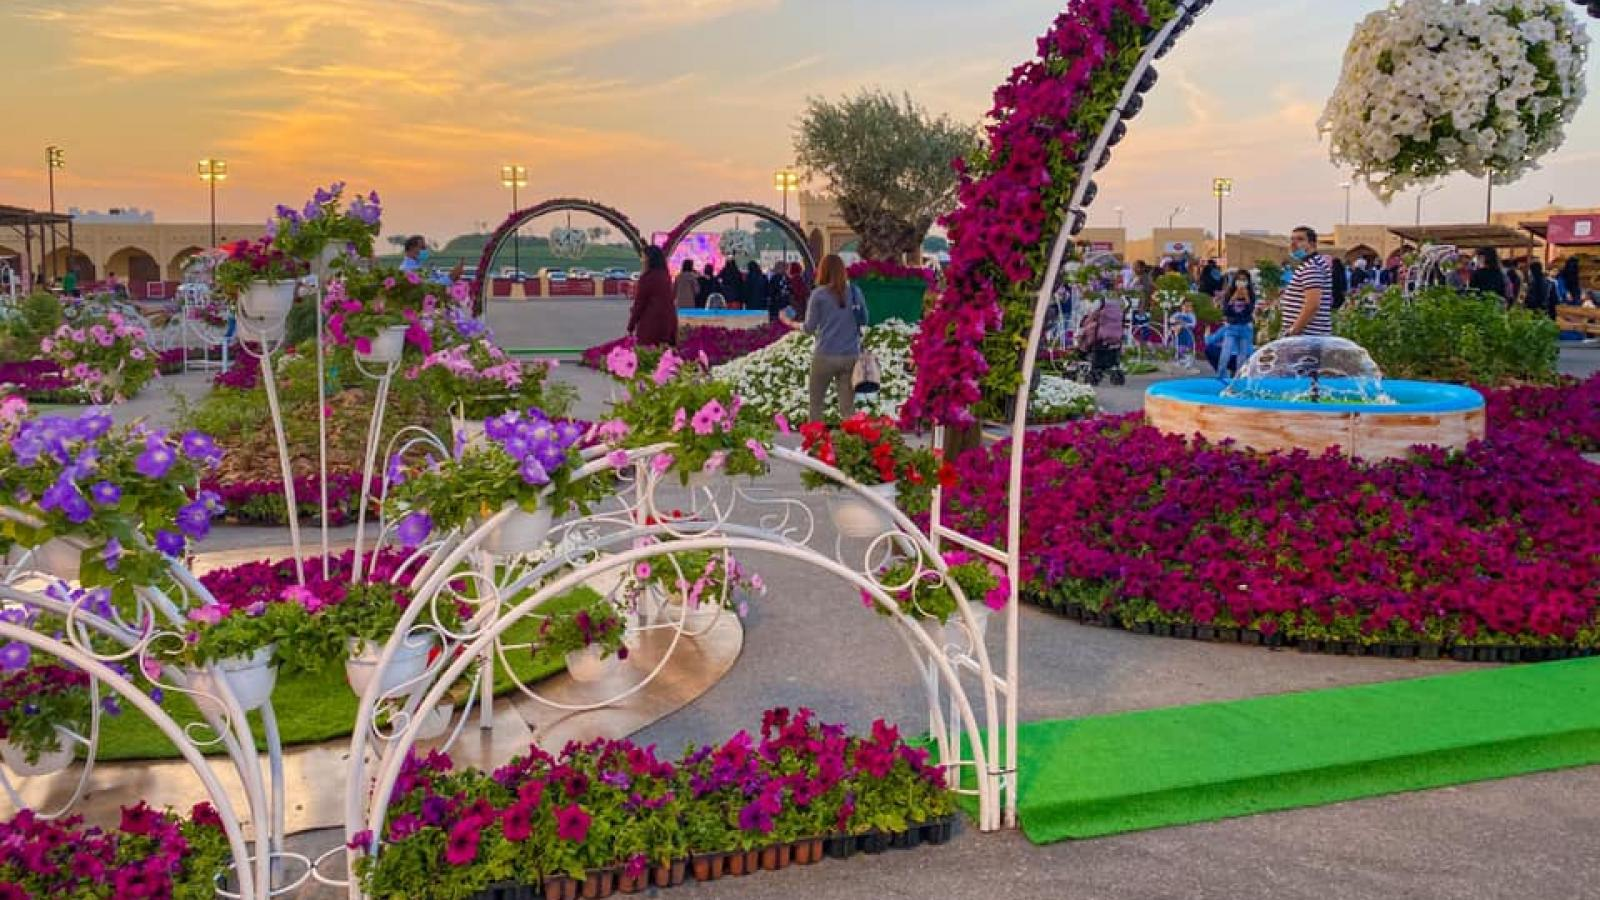 5th Mahaseel Festival is taking place at Katara Cultural Village